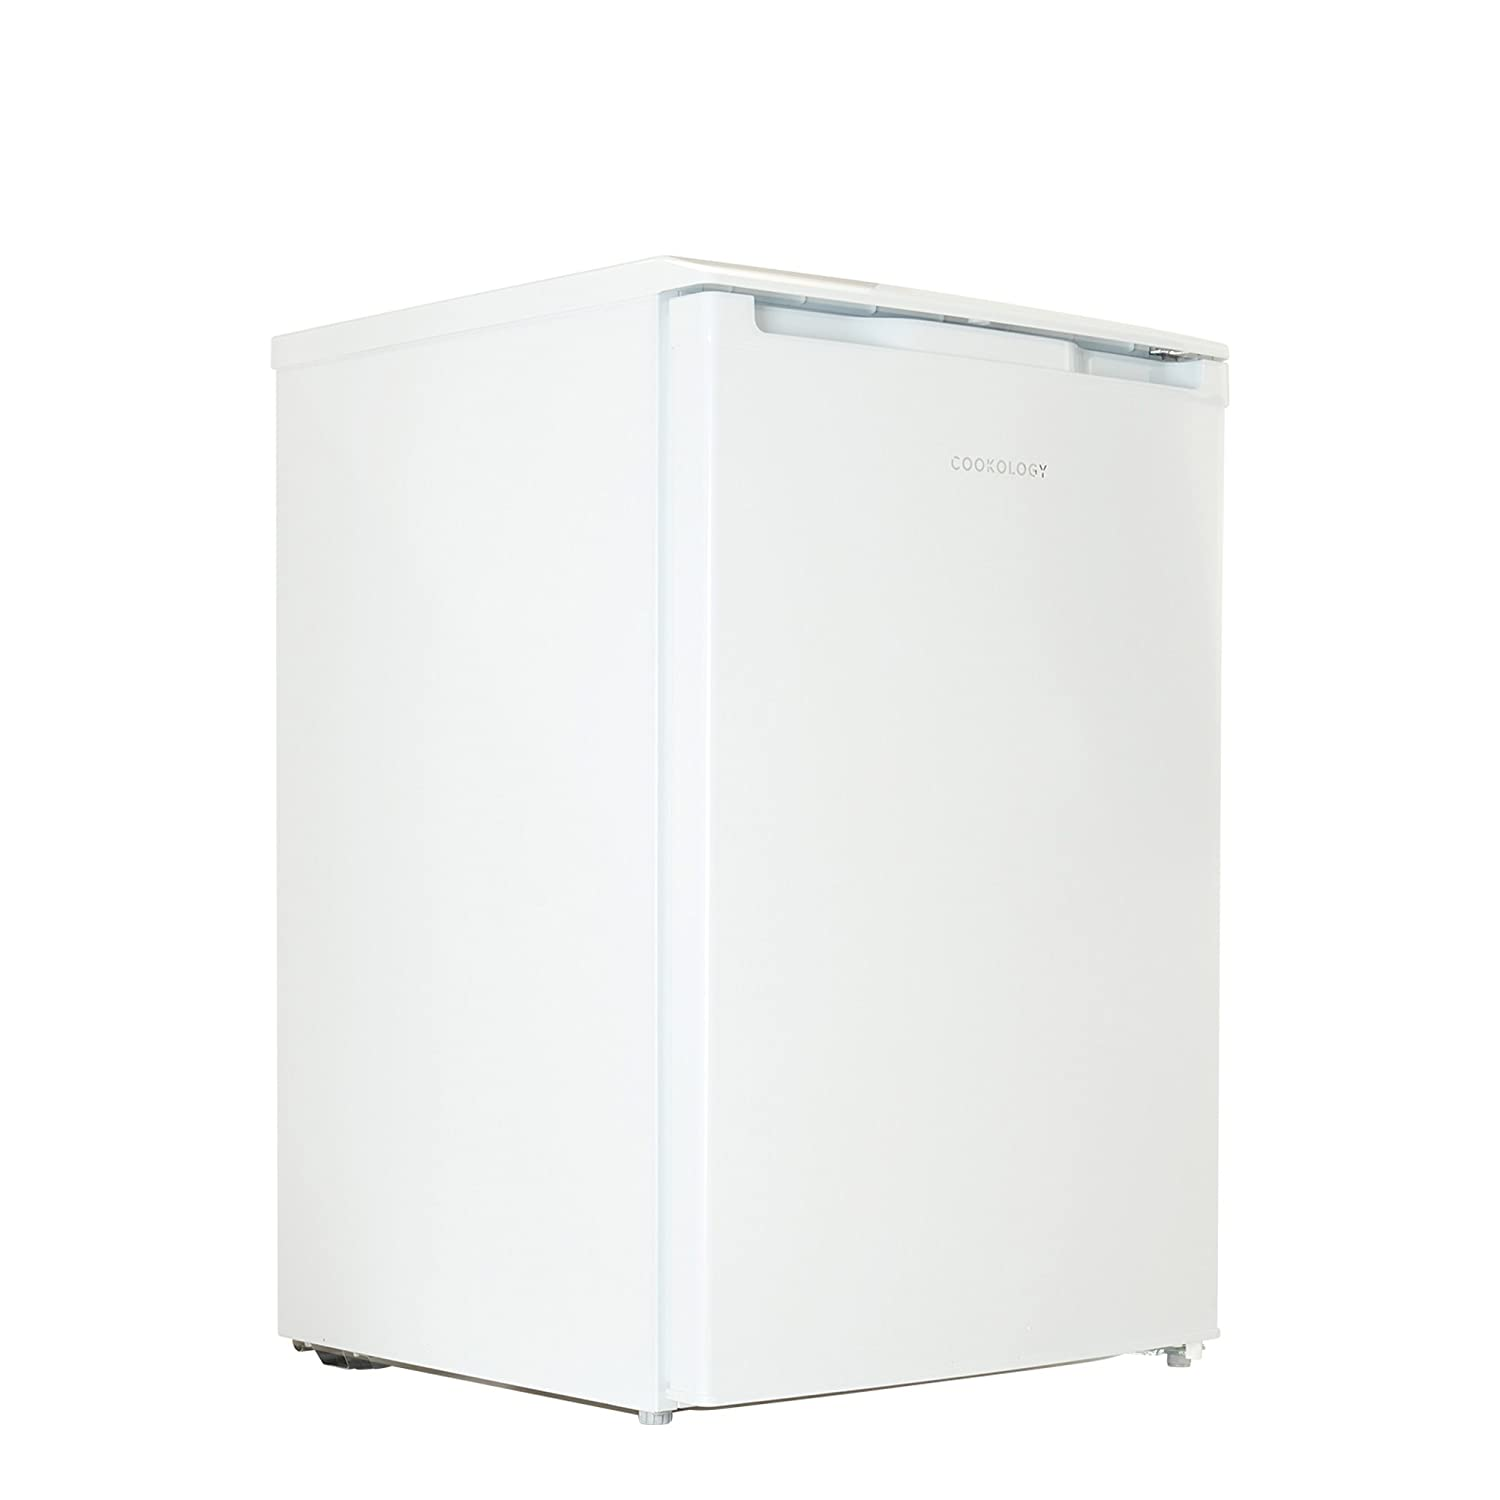 Cookology UCFR130WH 55cm Freestanding Undercounter Larder Fridge in White [Energy Class A+]